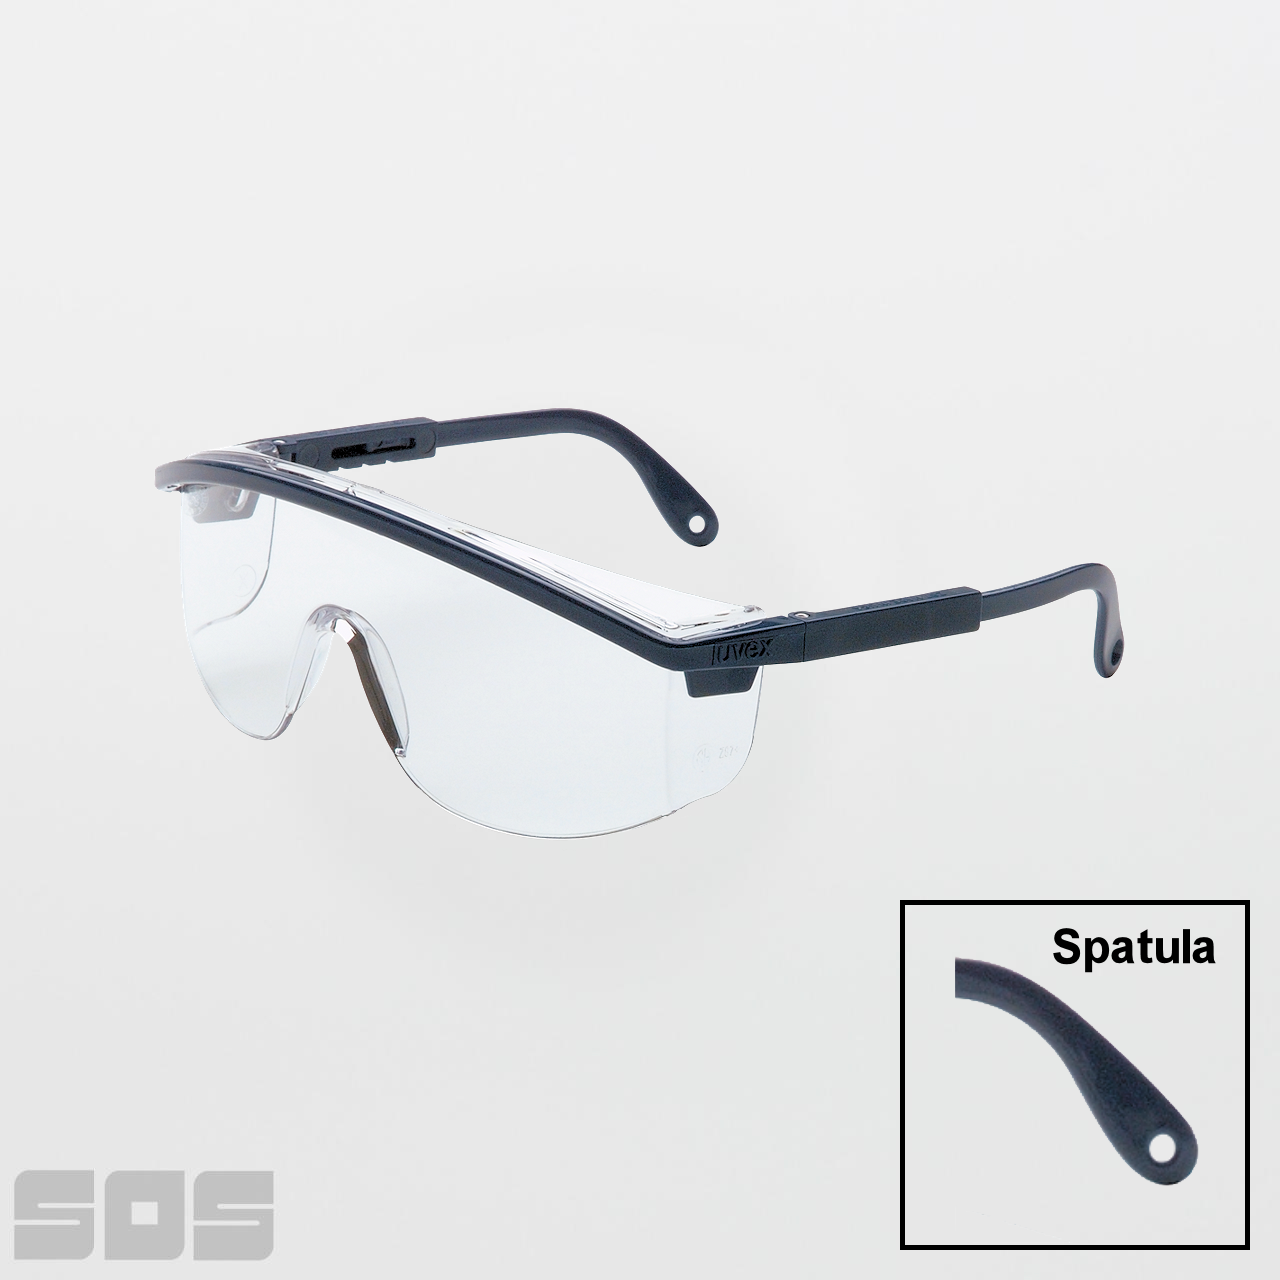 c428a39a2ff2 UVEX Astrospec 3000 Clear Safety Glasses (Anti-Scratch). Larger   More  Photos